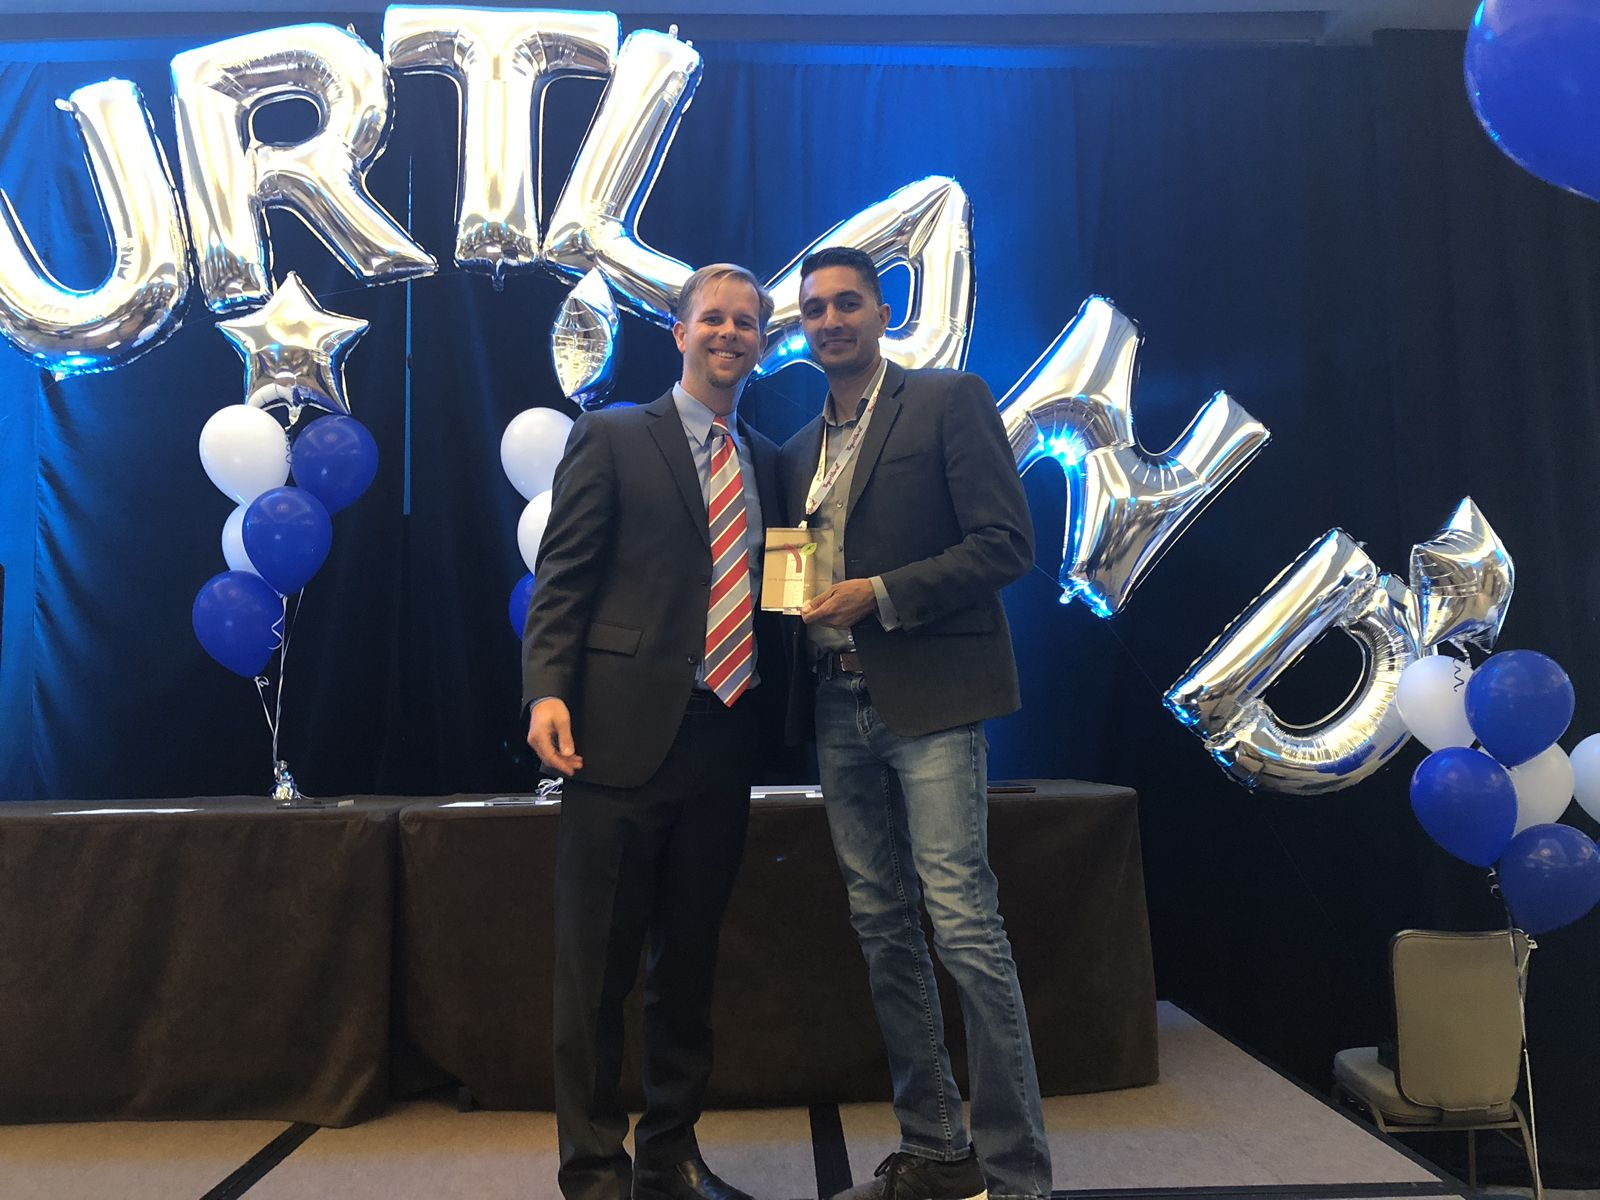 Yogurtland Honors Top Franchisees at Annual Conference